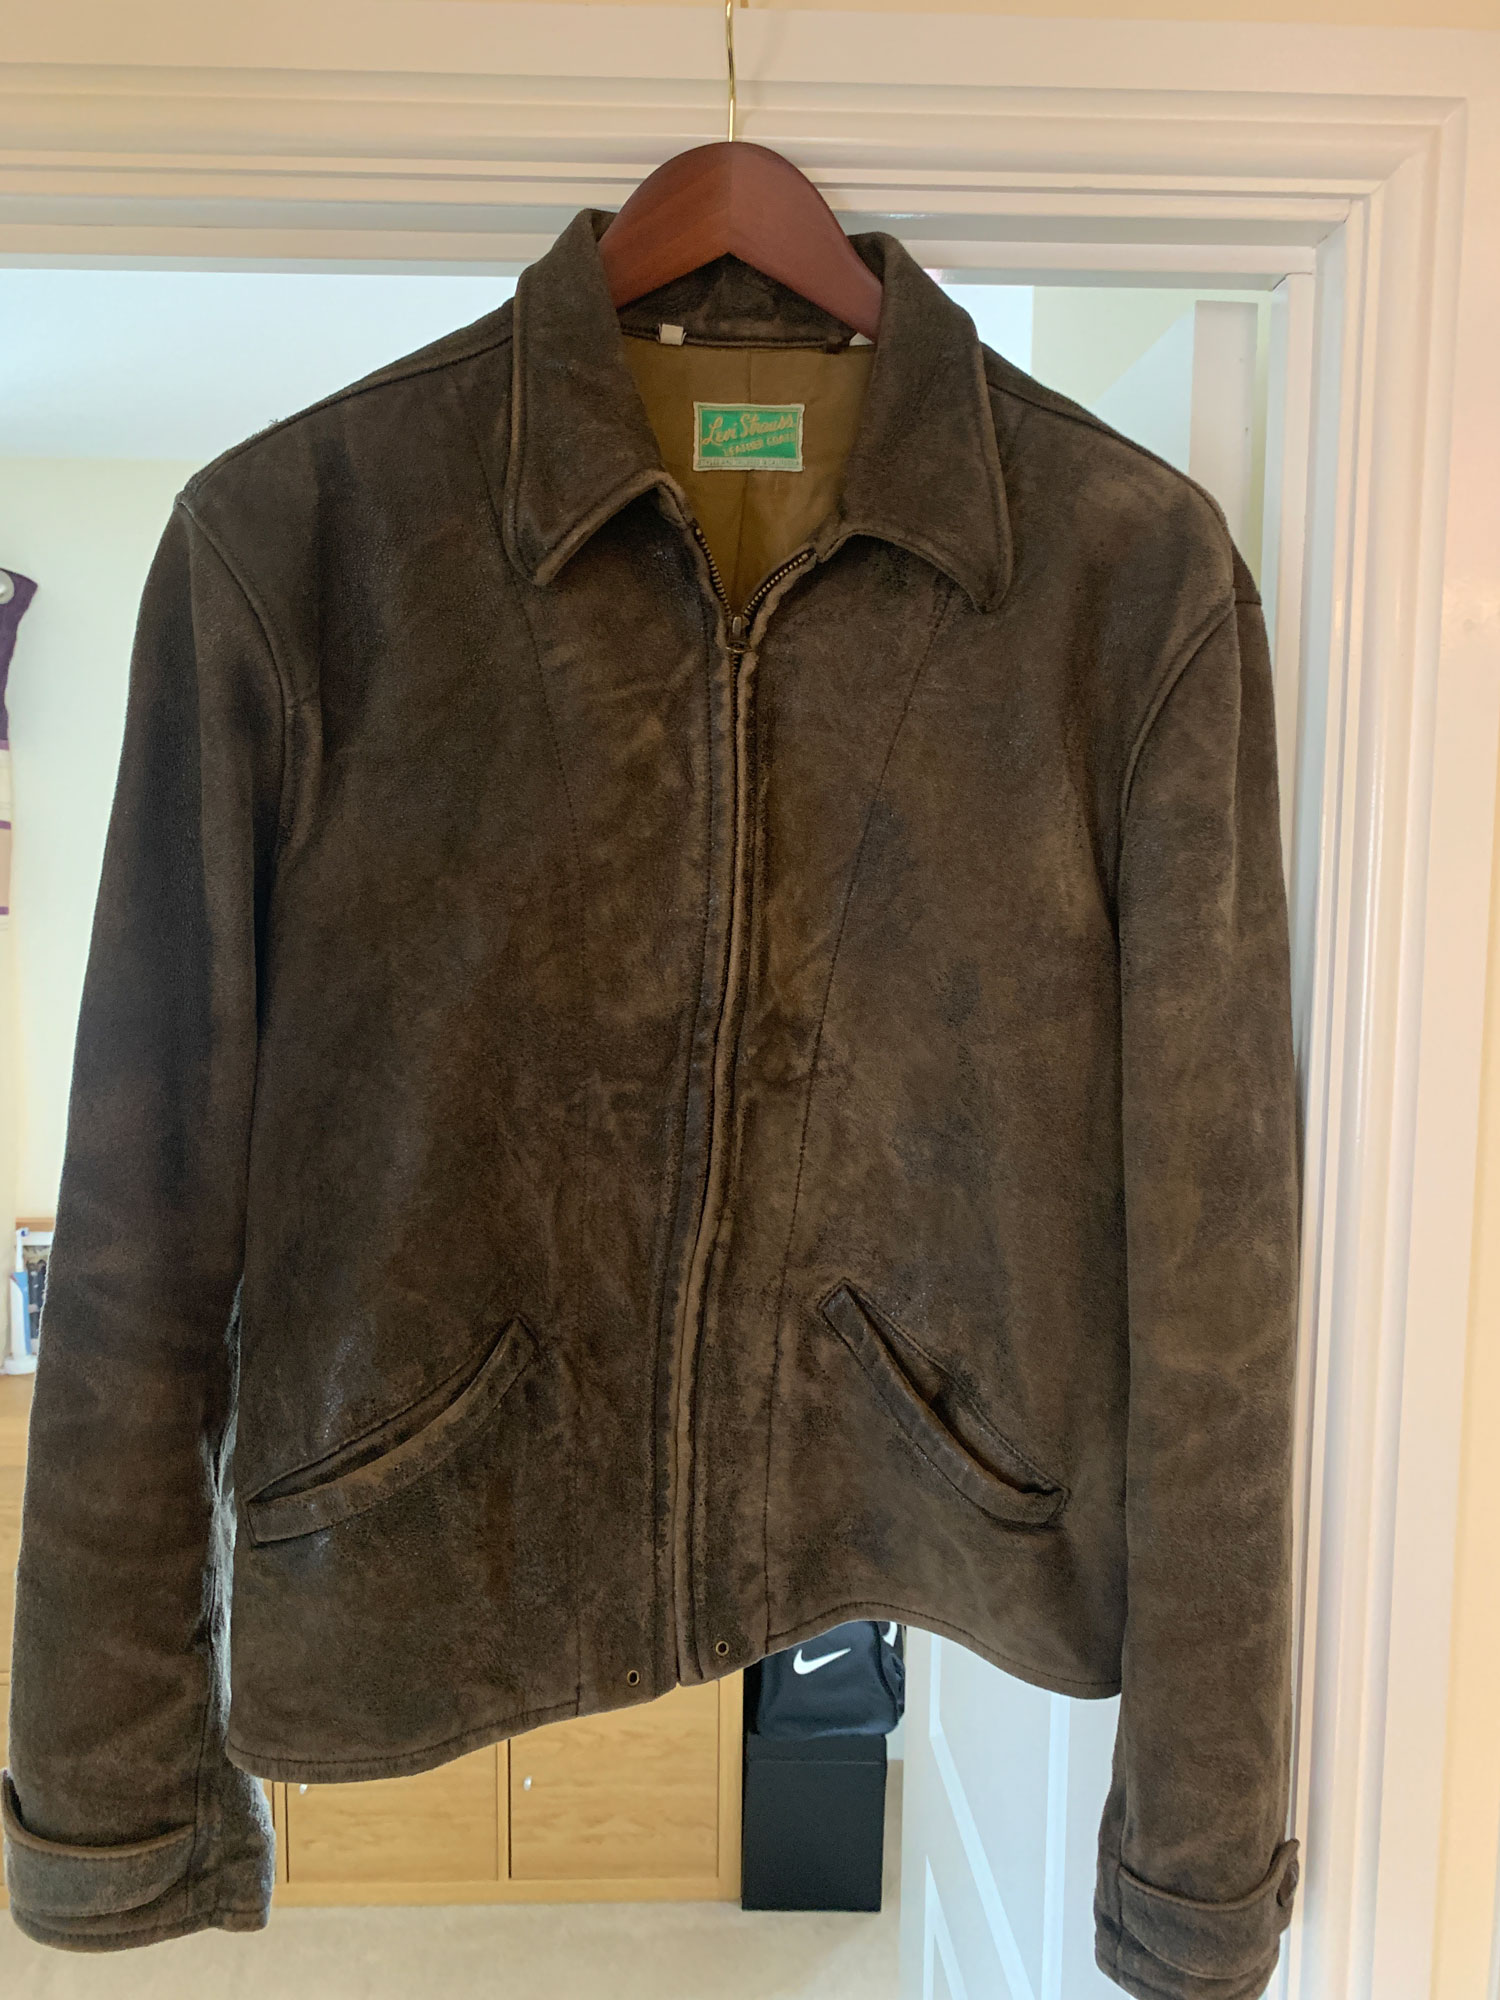 Leather Jacket from Skyfall on a hanger